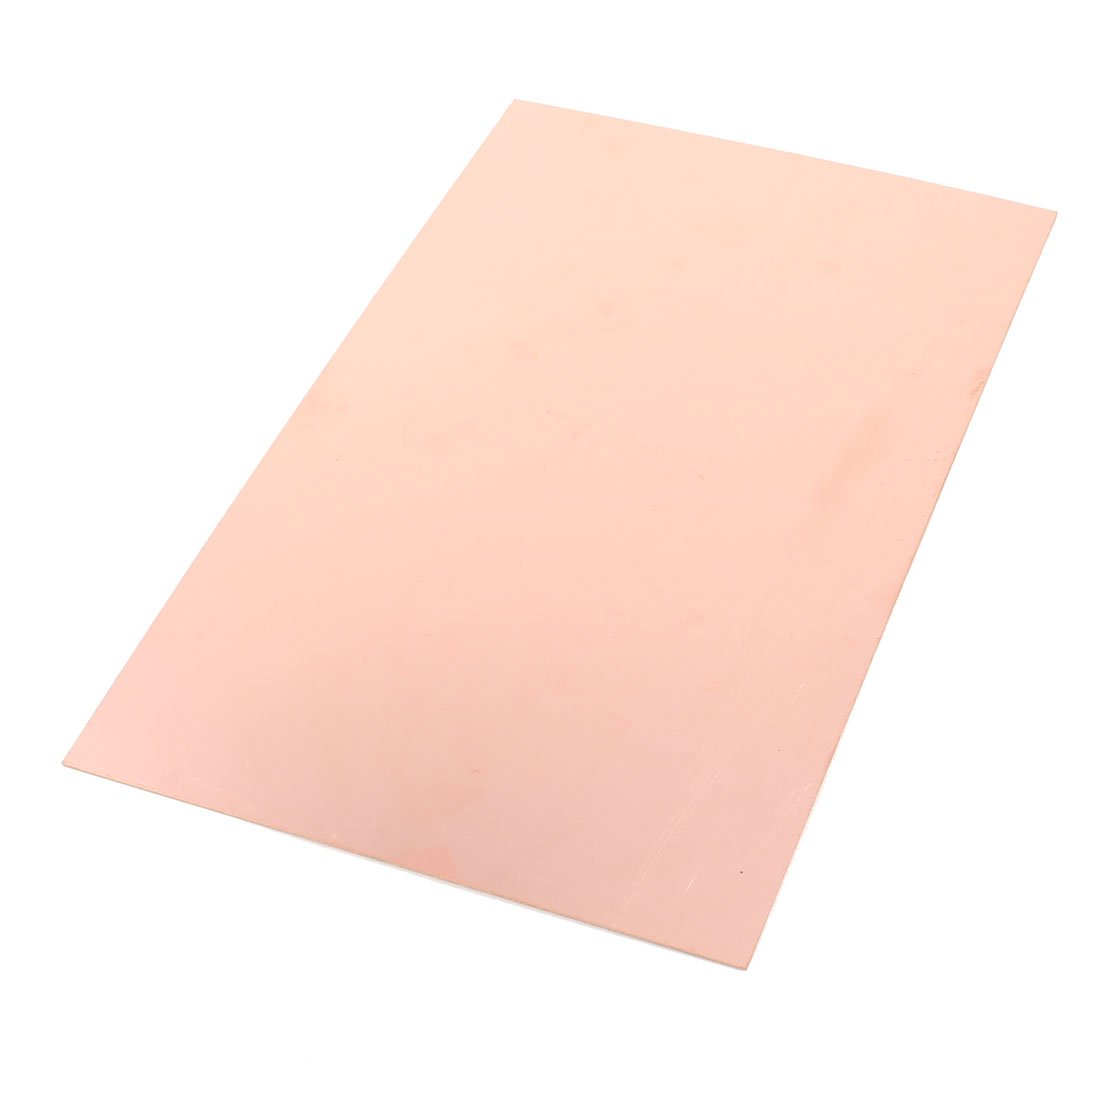 Diy Single Side Copper Plated Prototype Paper Pcb Board 20cm X 30cm 10 Pcs 50mmx70mm Cover Circuit Stripboard Tools